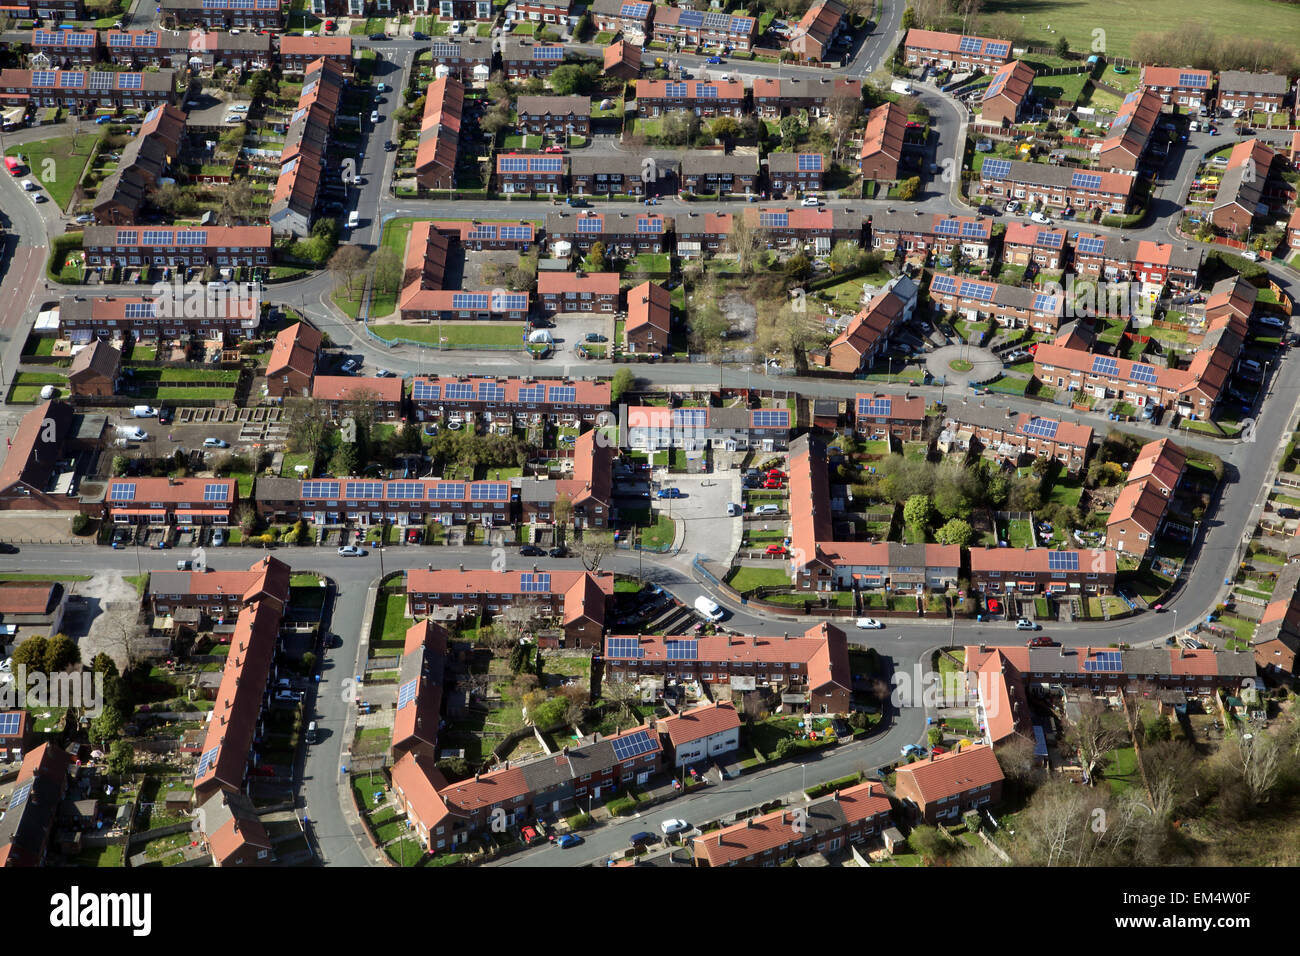 aerial view of UK housing with solar panels - Stock Image